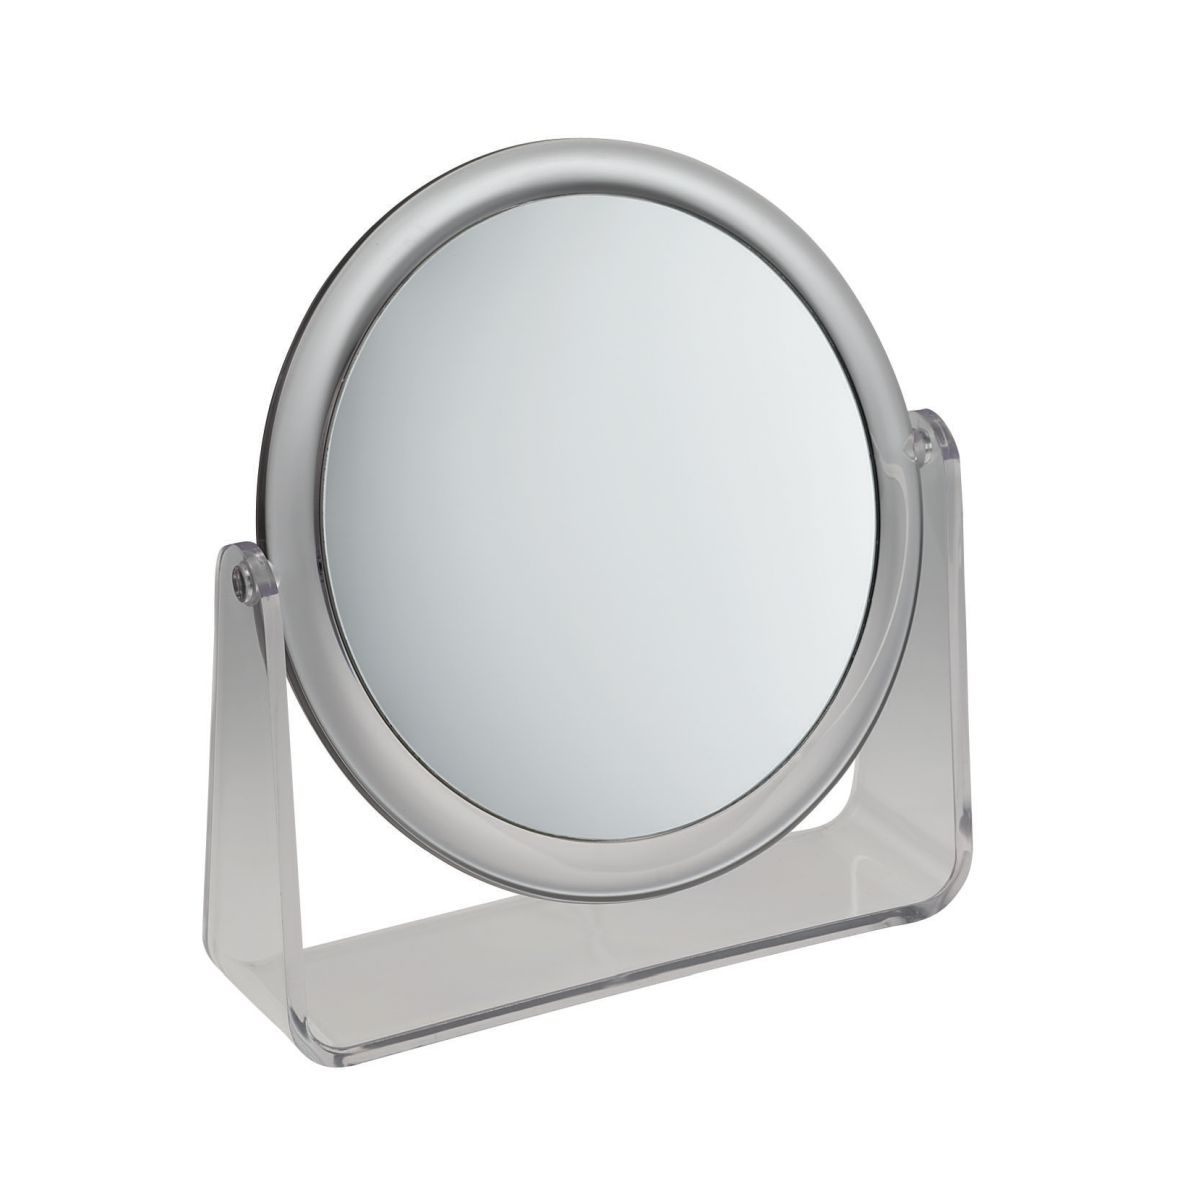 919 C 1 - 5x Magnification Mirror with Clear Base - 919C